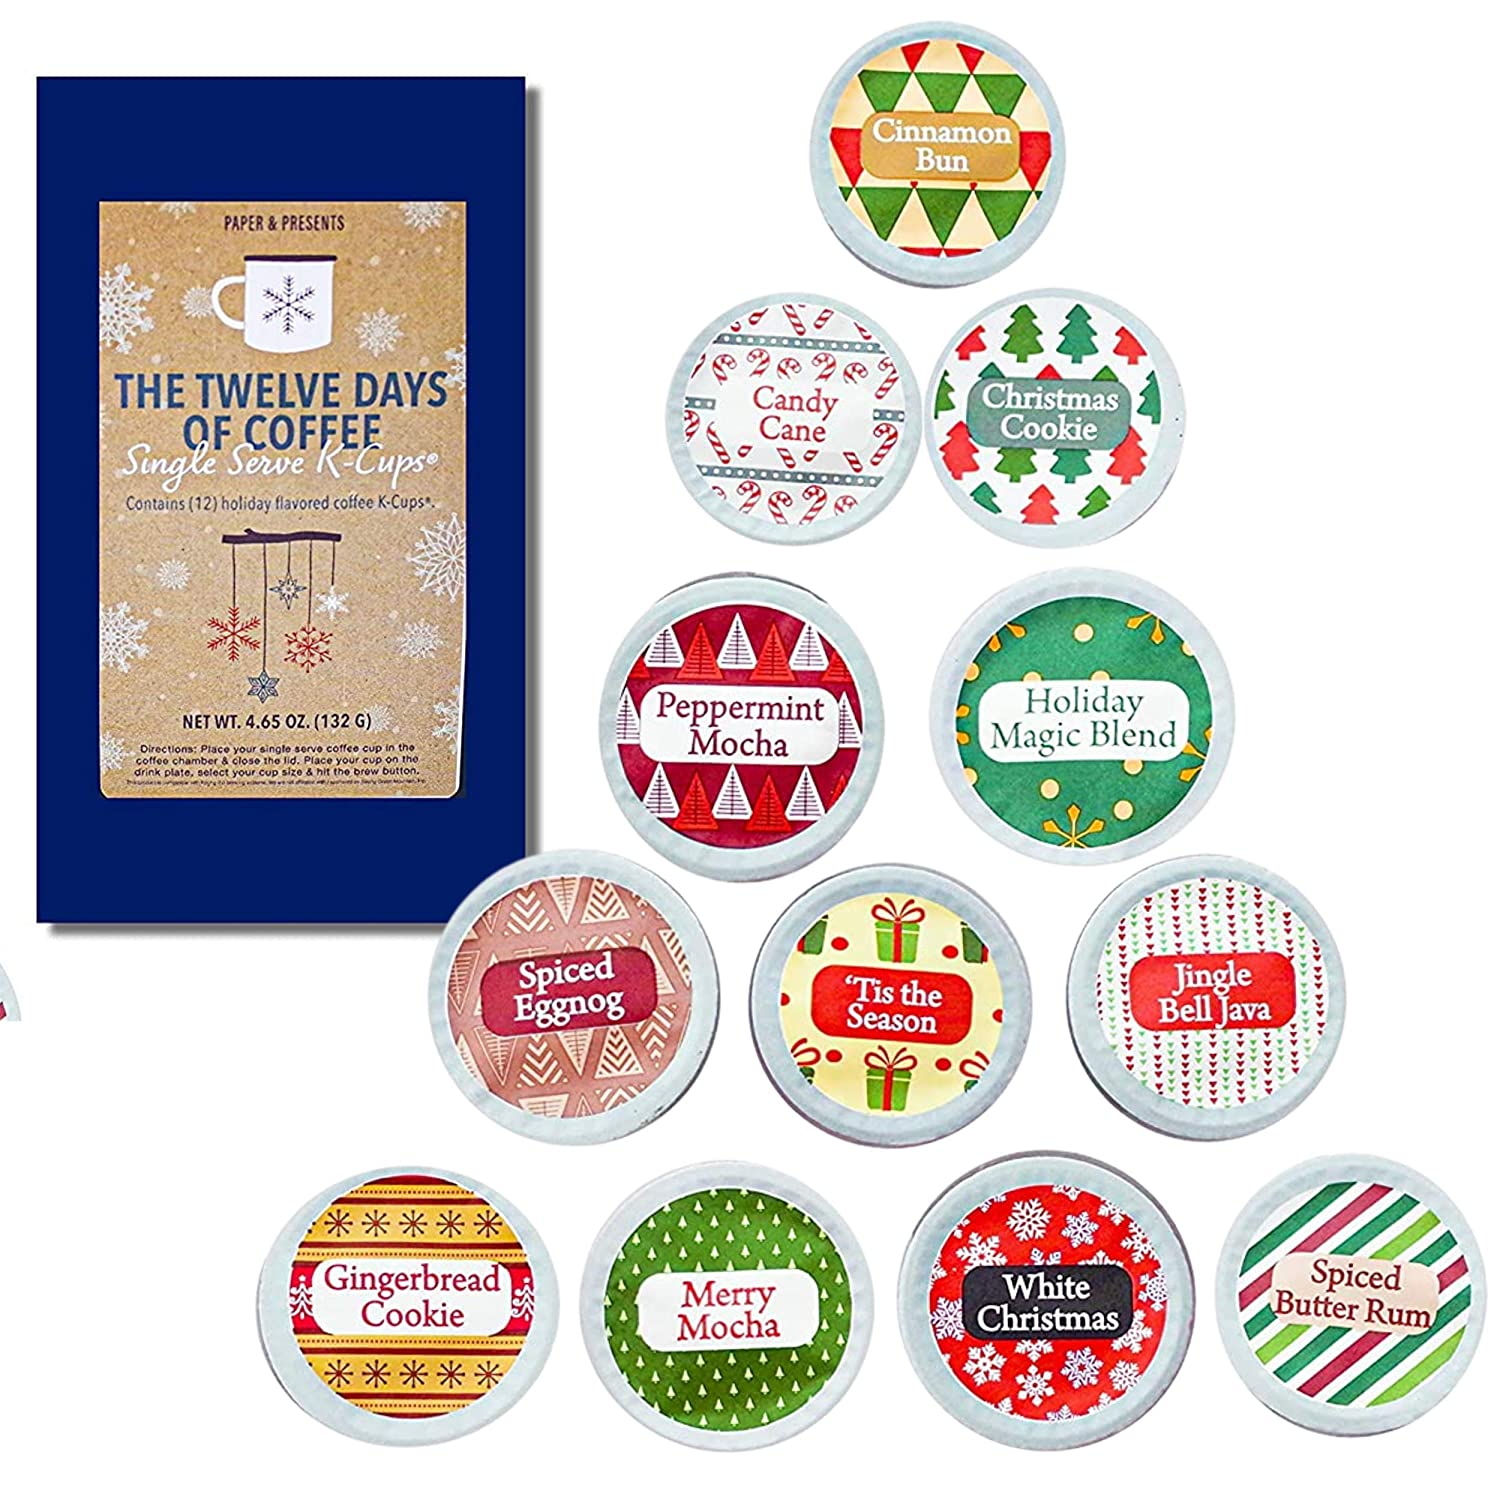 Coffee Pods Christmas Coffee Gift 12 Single Serve Keurig KCUP Compatible Advent Calendar Assortment- Holiday Gourmet Gift Box Set - Best Xmas Present Idea/Stocking Stuffer (Coffee)